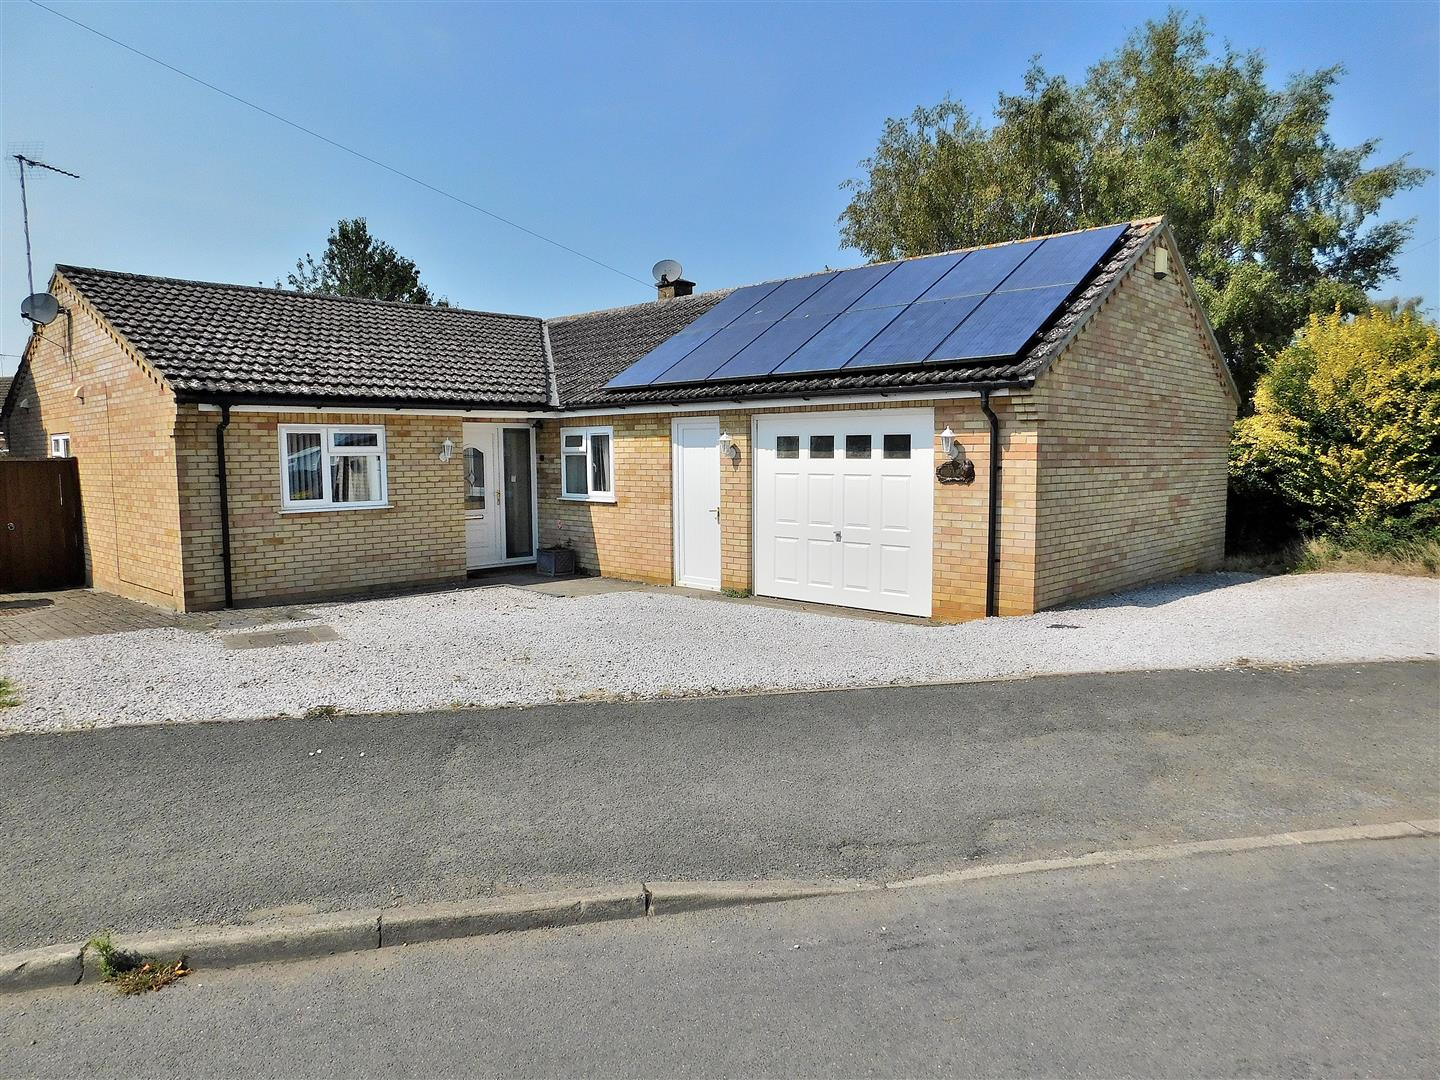 4 bed detached bungalow for sale in King's Lynn, PE30 3EG 0